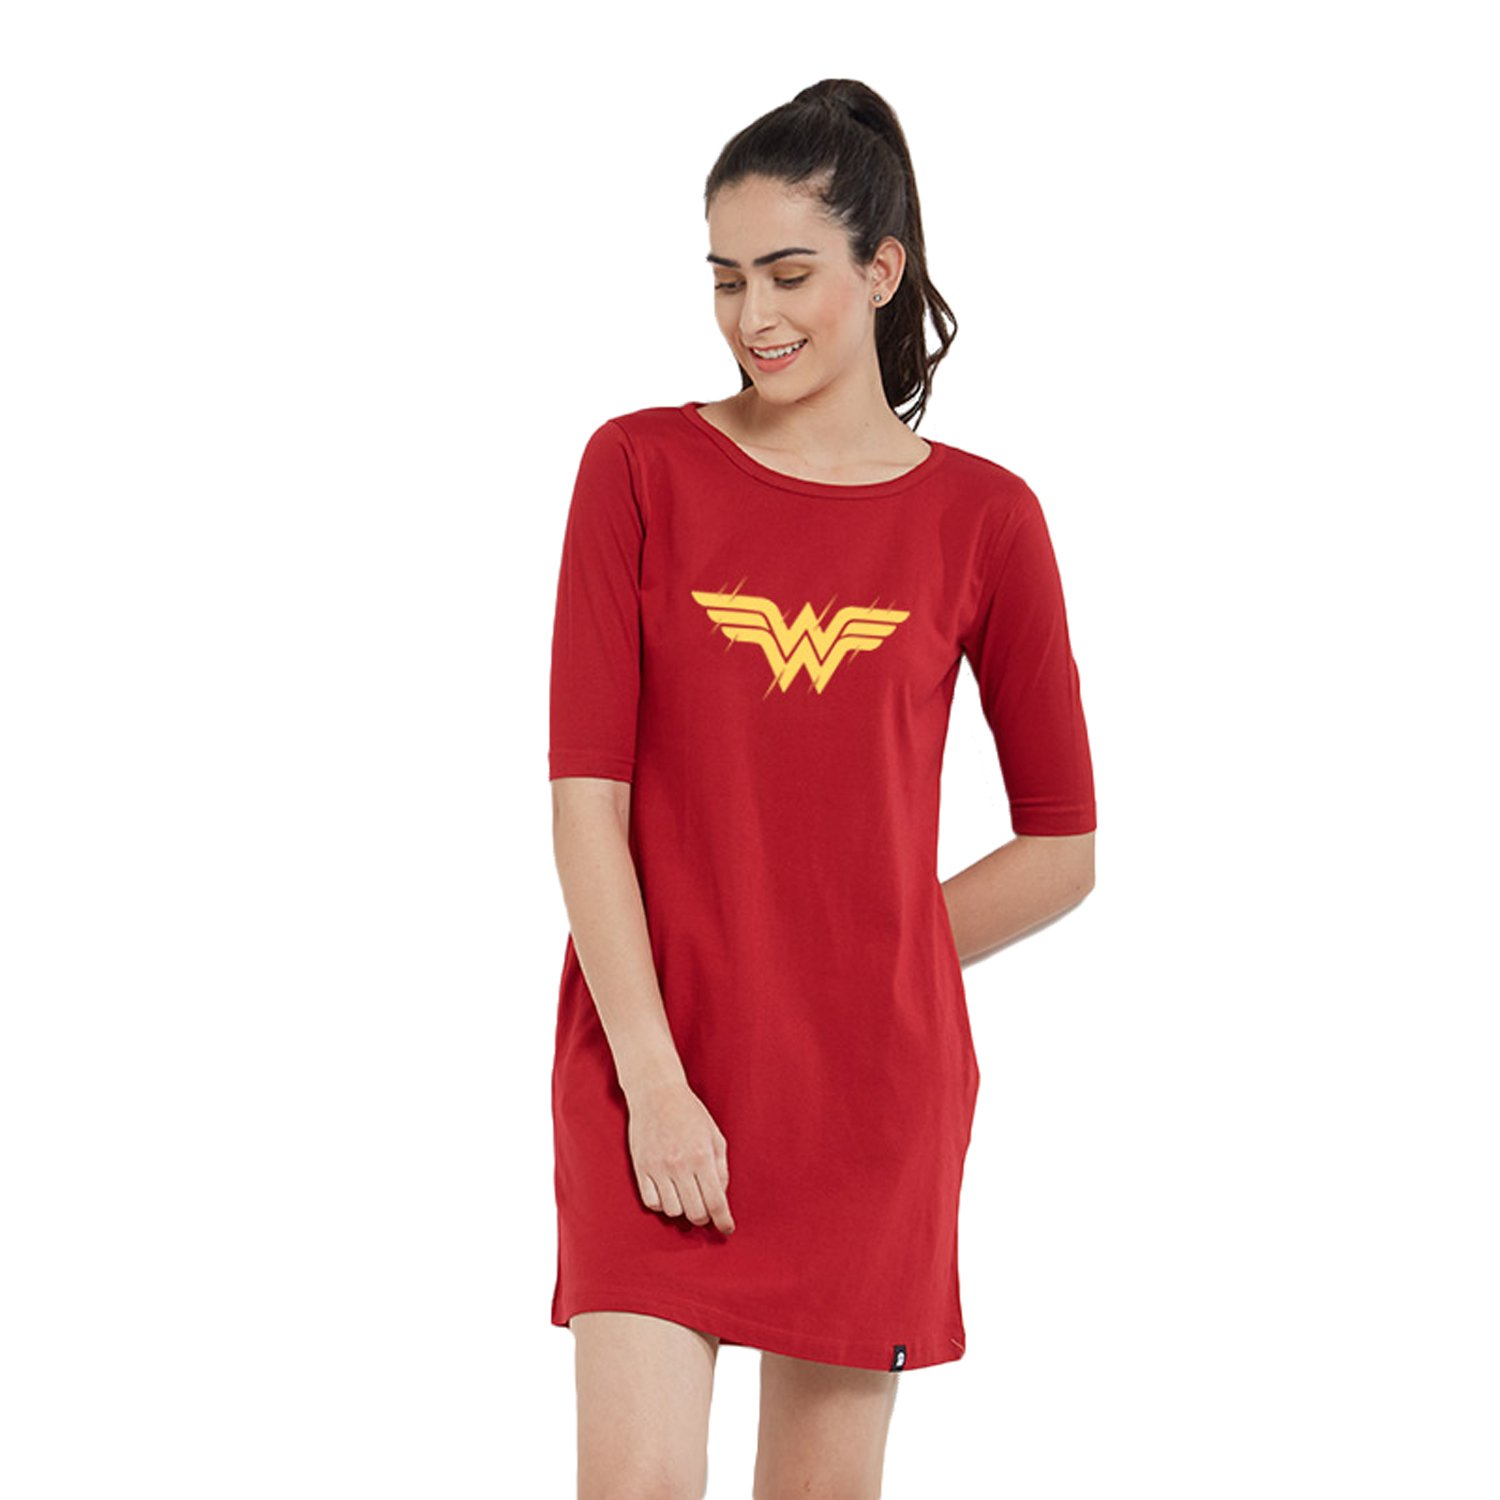 4b53a8f978 The Souled Store Wonder Woman  Logo T-Shirt Dress Graphic Printed Black  Cotton Dress for Women and Girls  Amazon.in  Clothing   Accessories